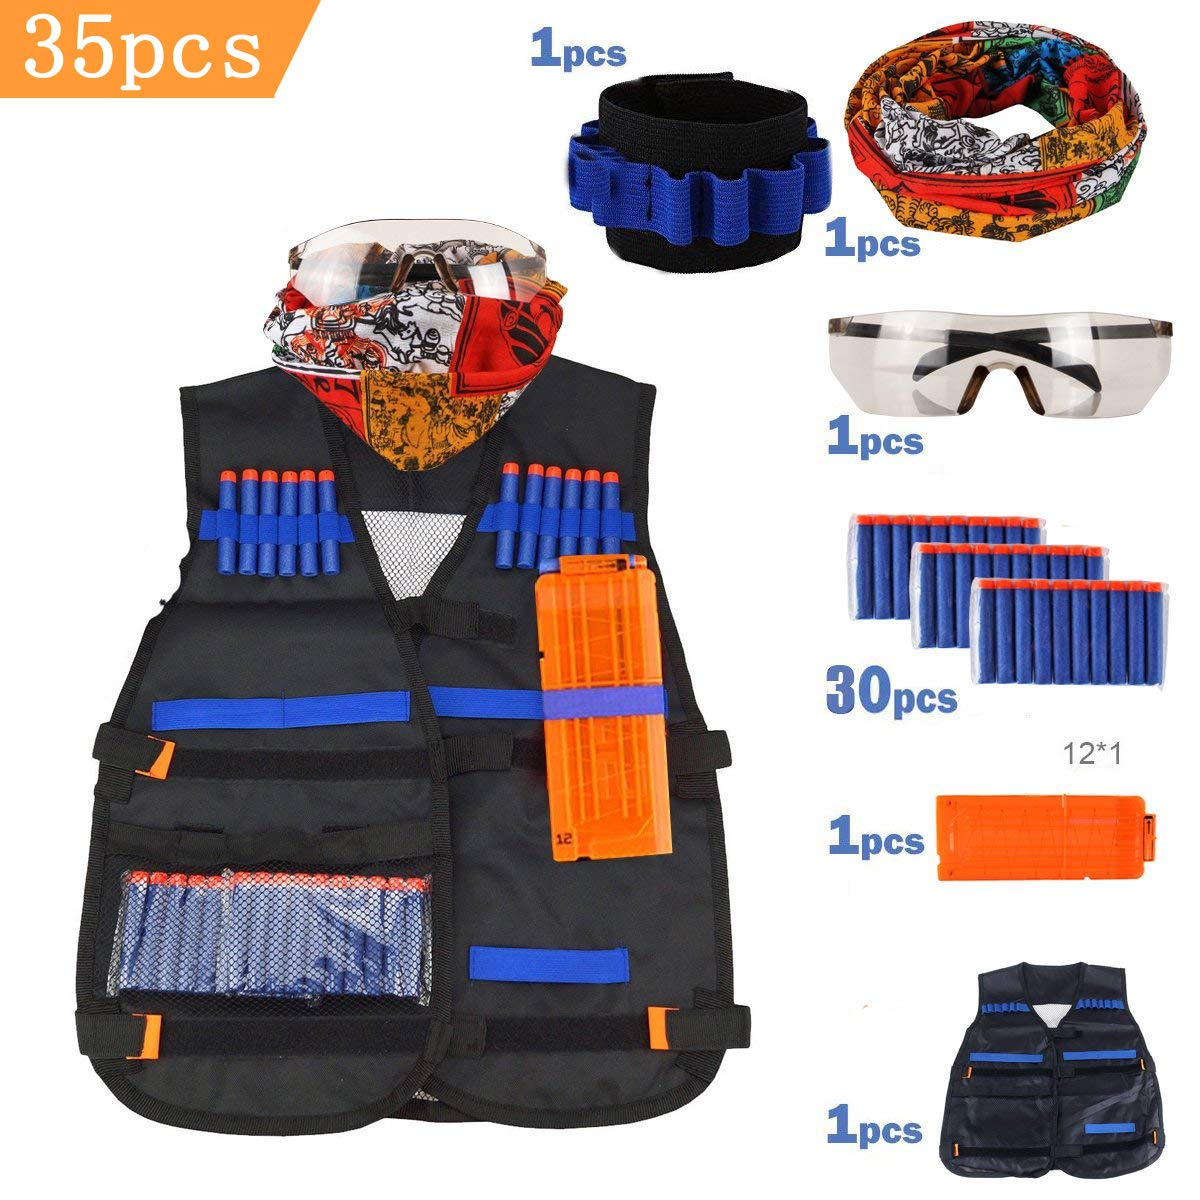 Airtana Tactical Vest Kit for Nerf Guns N-Strike Elite Series with 30 Refill Darts, Reload Clips,Mask,Protective Glasses,Wrist Band